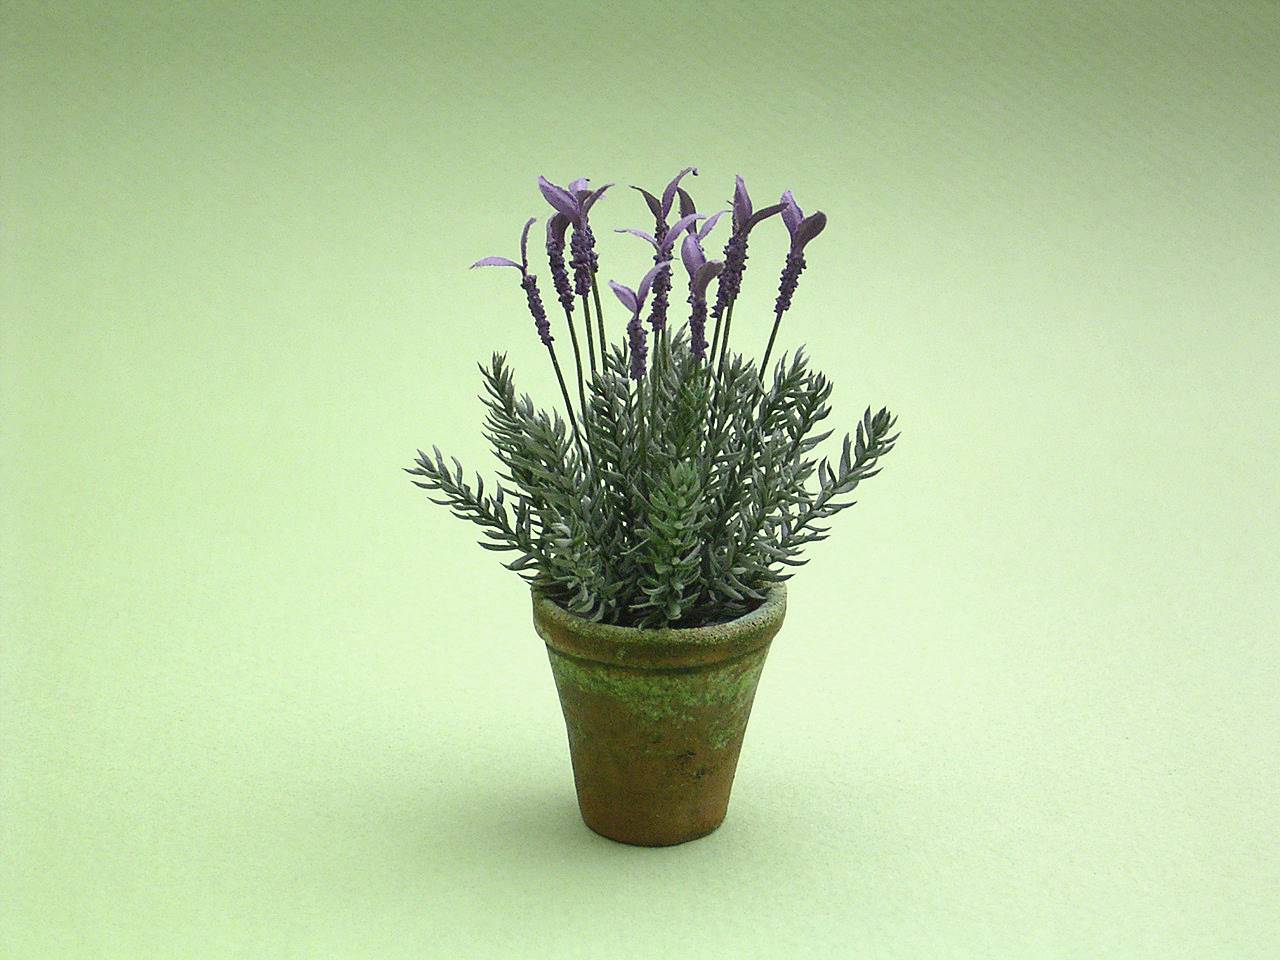 French Lavender + Erica Moss